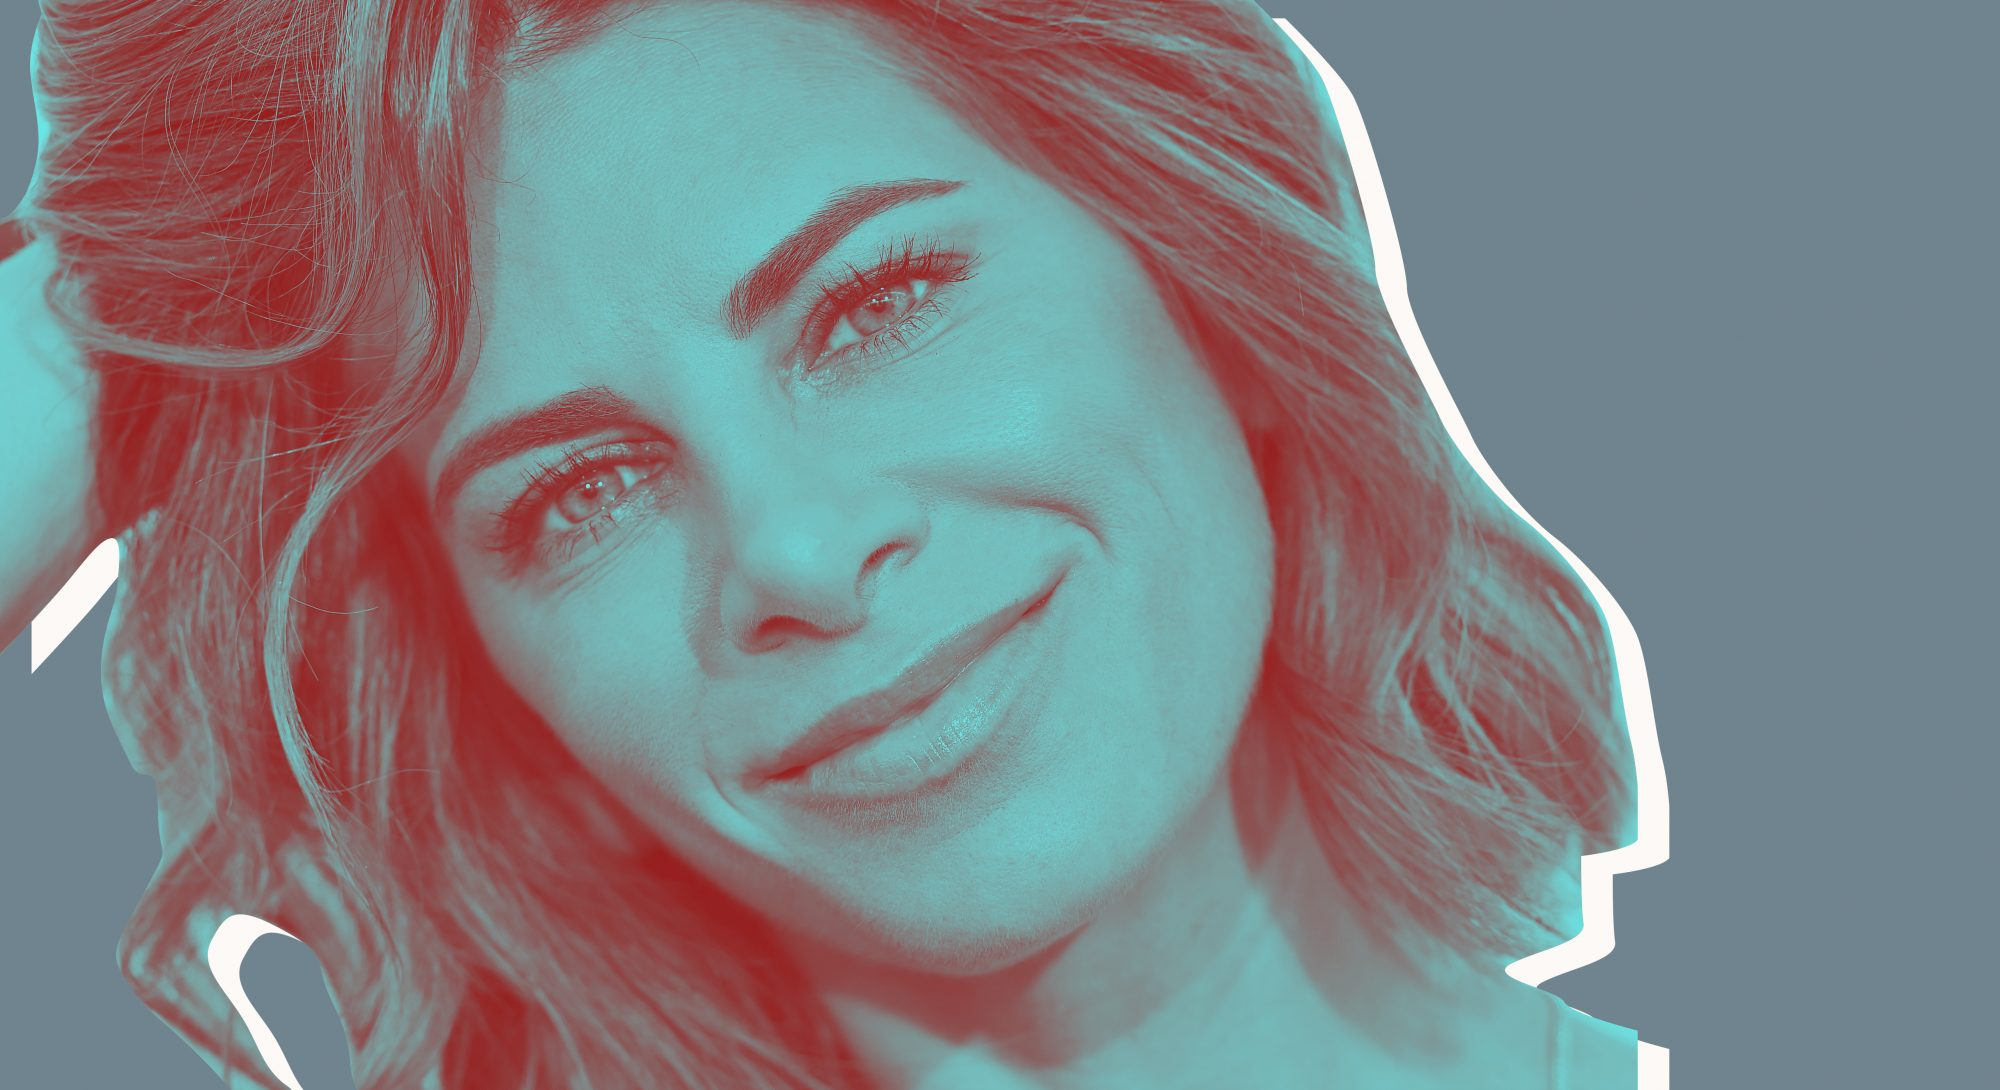 Jillian Michaels May Have Just Revealed the Secret to Looking Younger